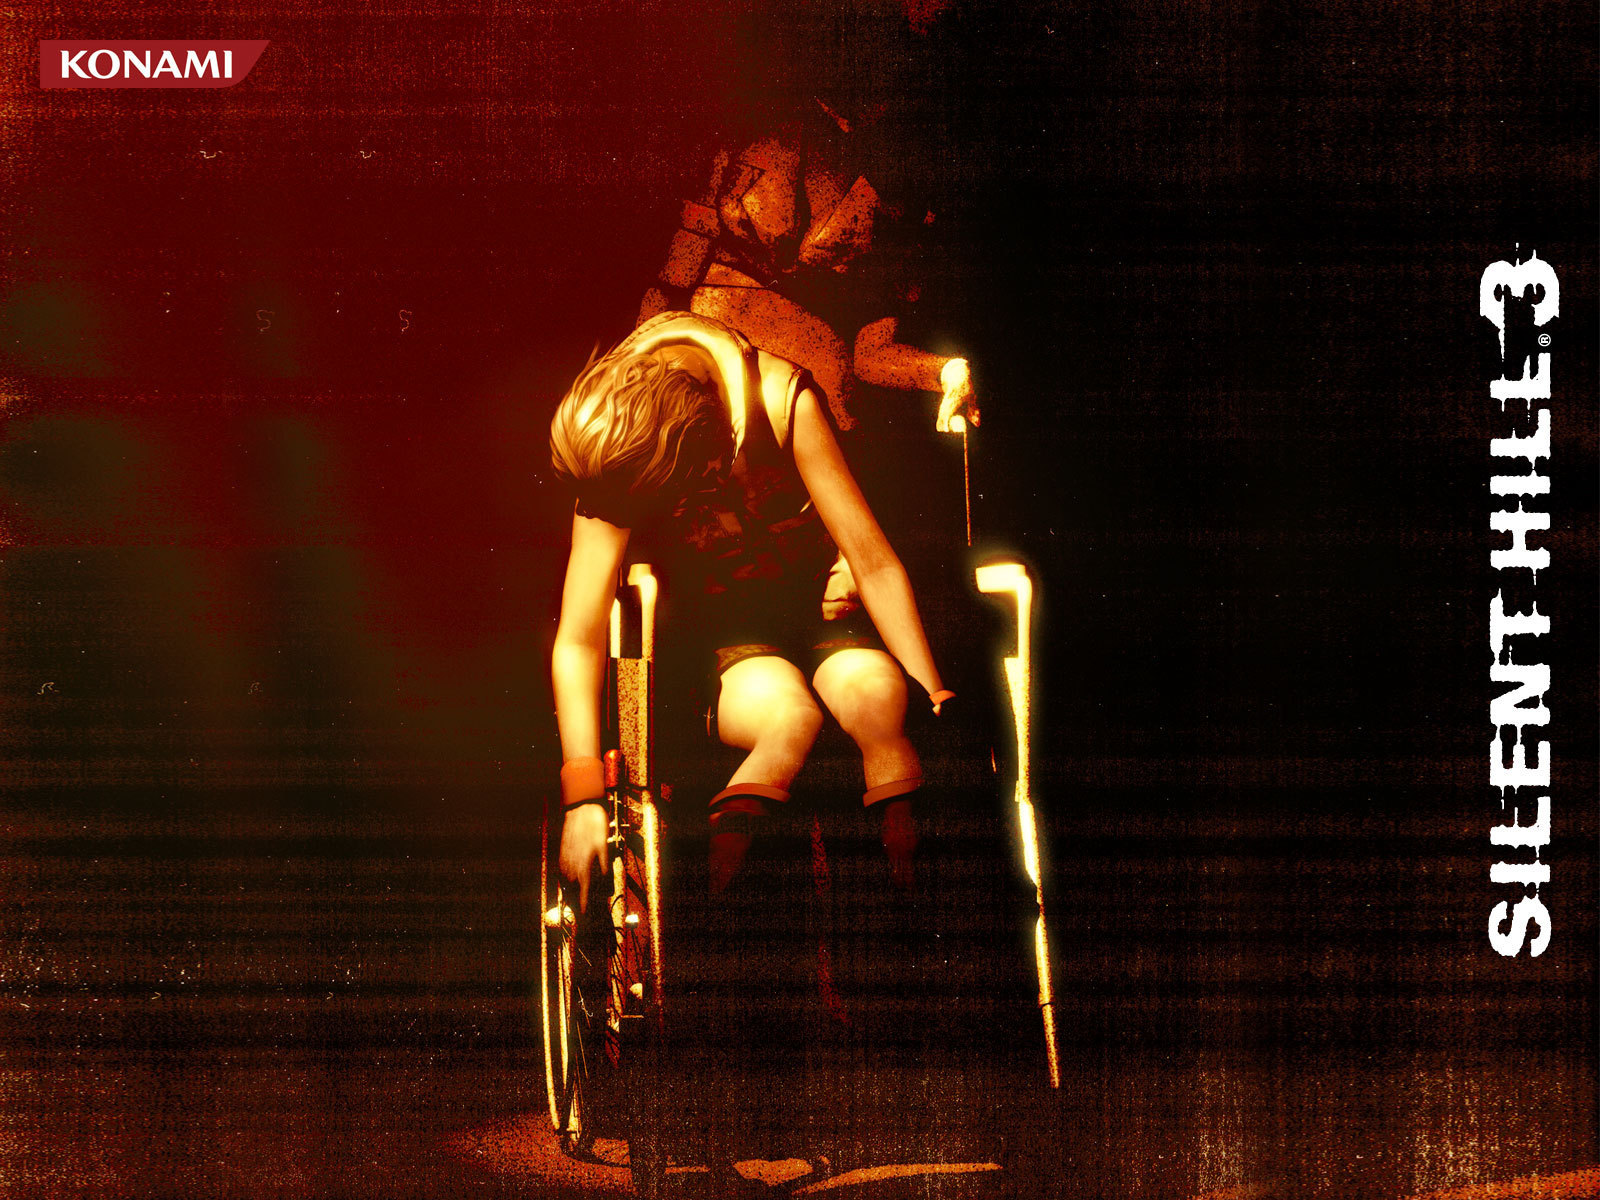 Silent Hill 3 images SH3_wallpaper HD wallpaper and background photos